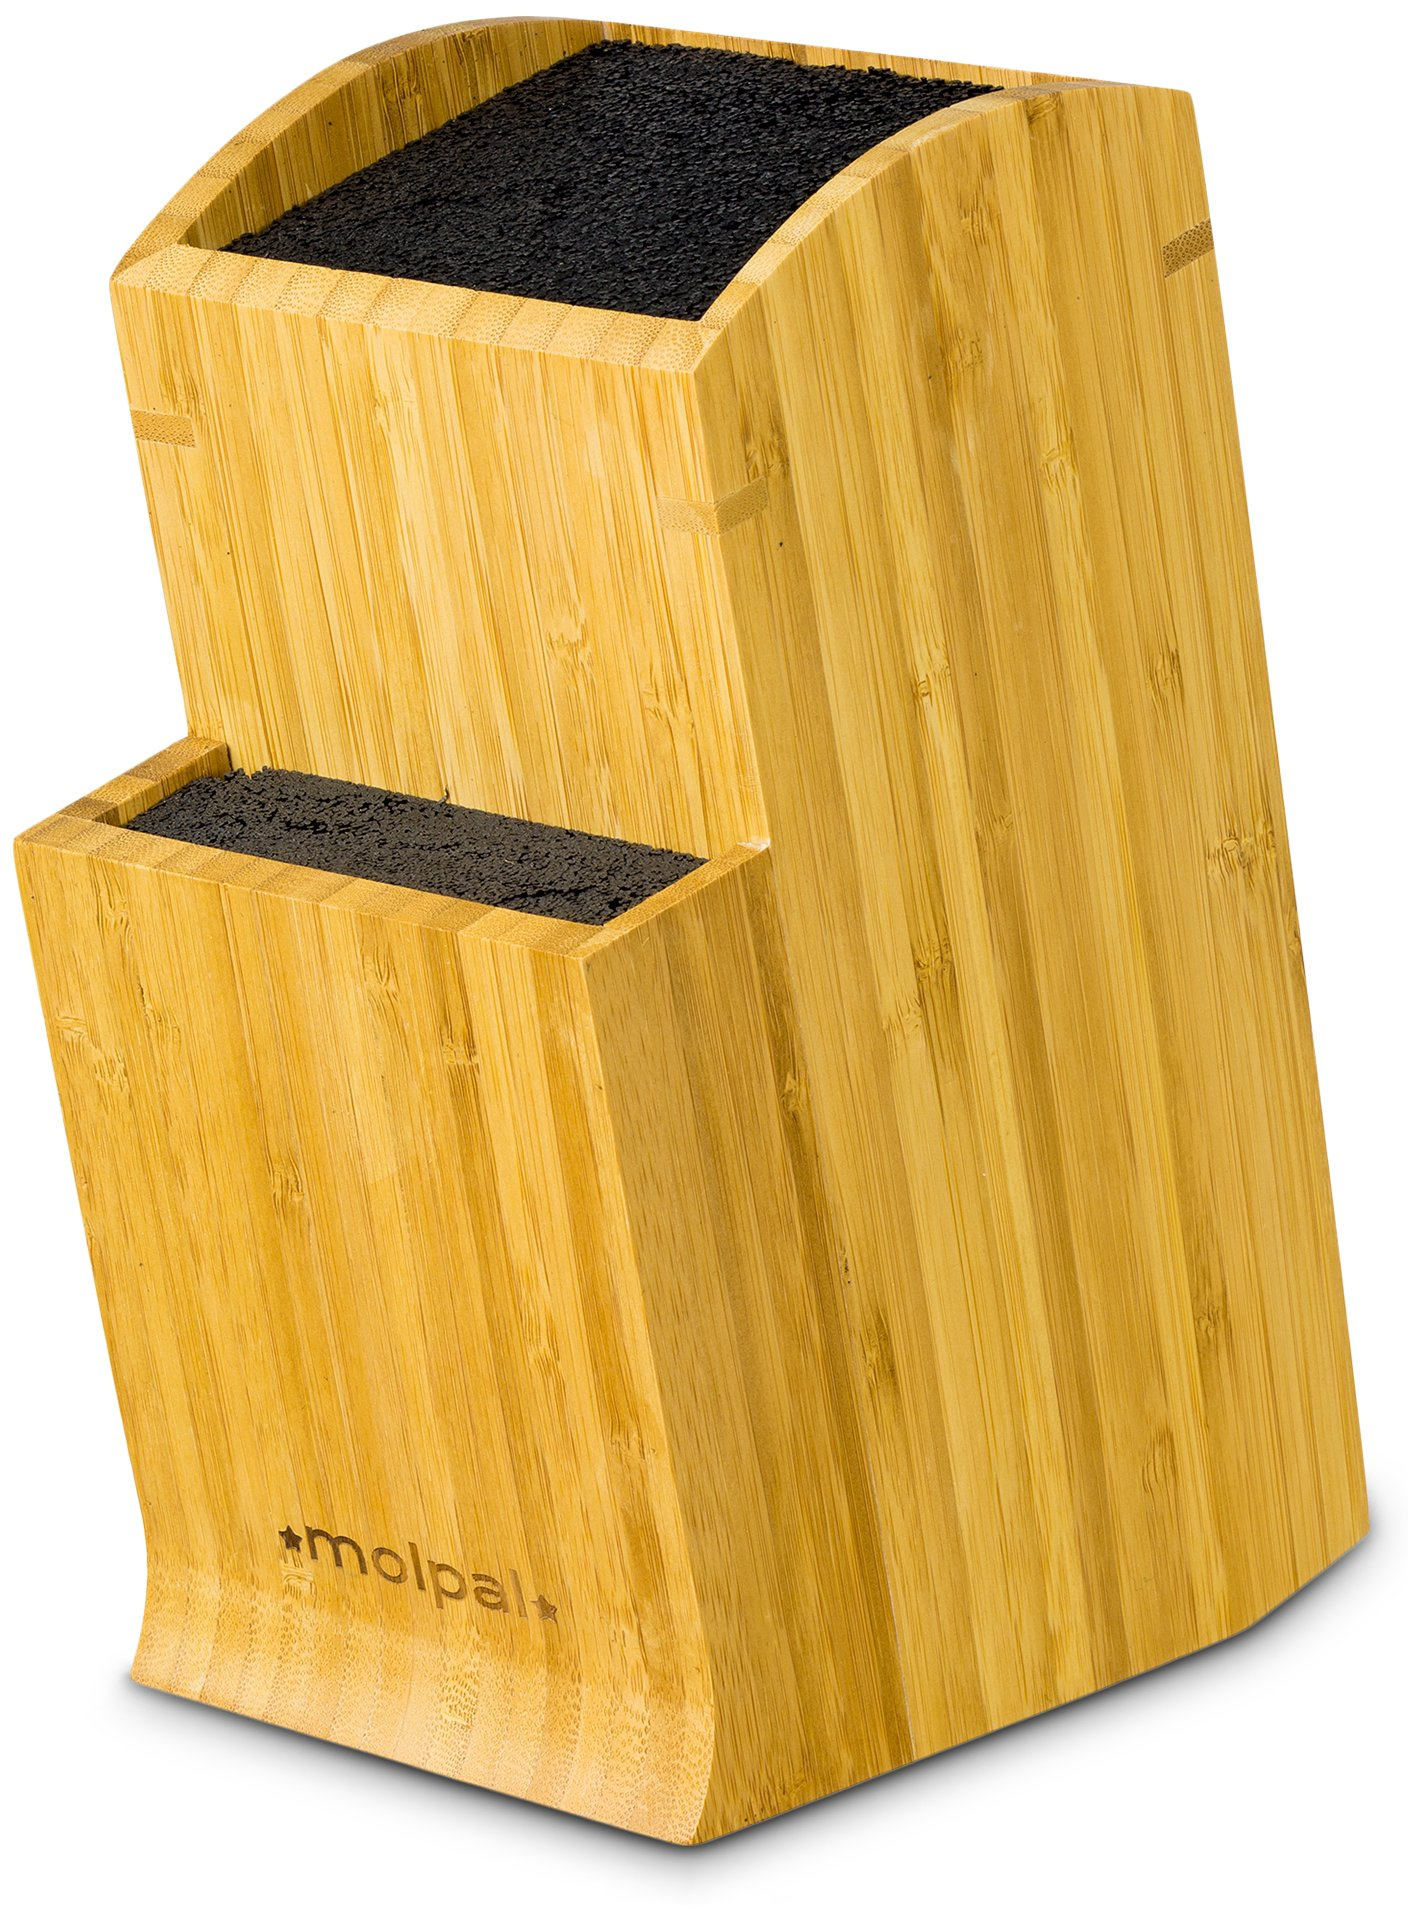 Universal Knife Block Stand Holder - Without Knives, 2 Tier Slotless Storage Kitchen Bamboo Countertop Organizer fit Large & Small Cutlery & Accessories - Easy Clean Dishwasher Safe Removable Bristles